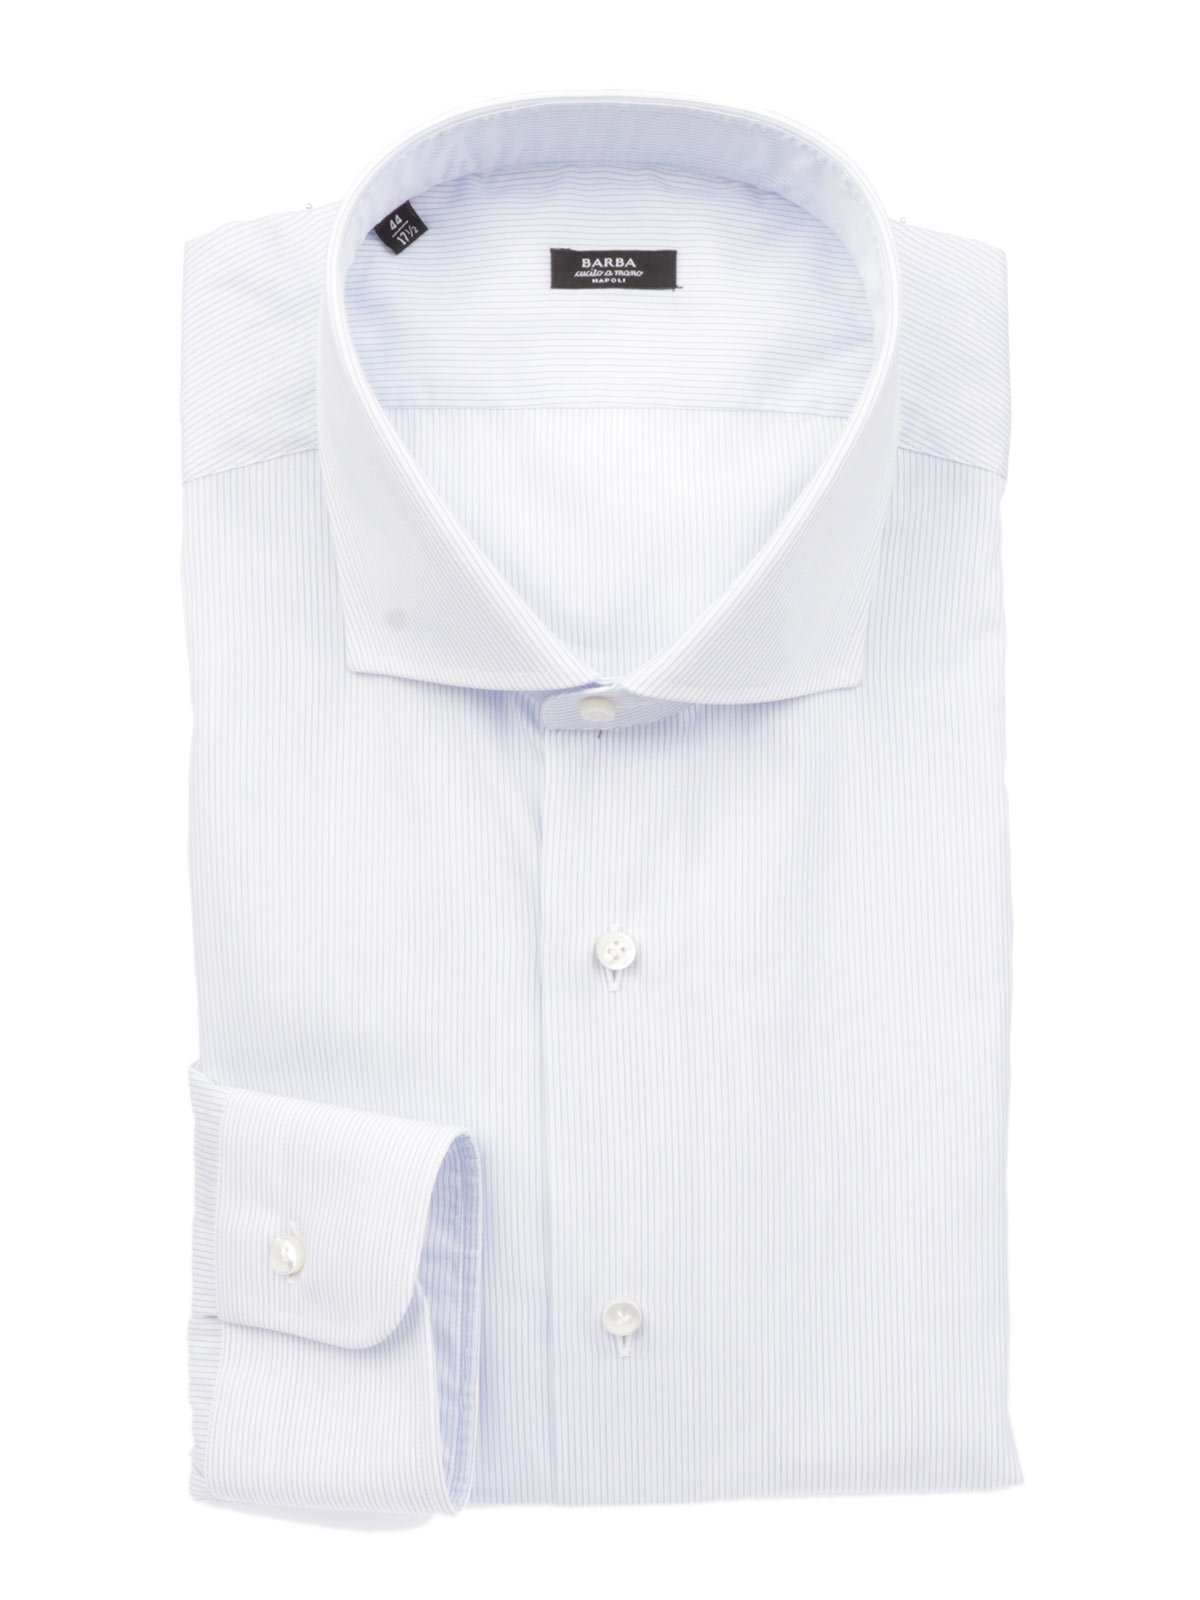 Picture of BARBA | Men's Classic Micro-Striped Shirt